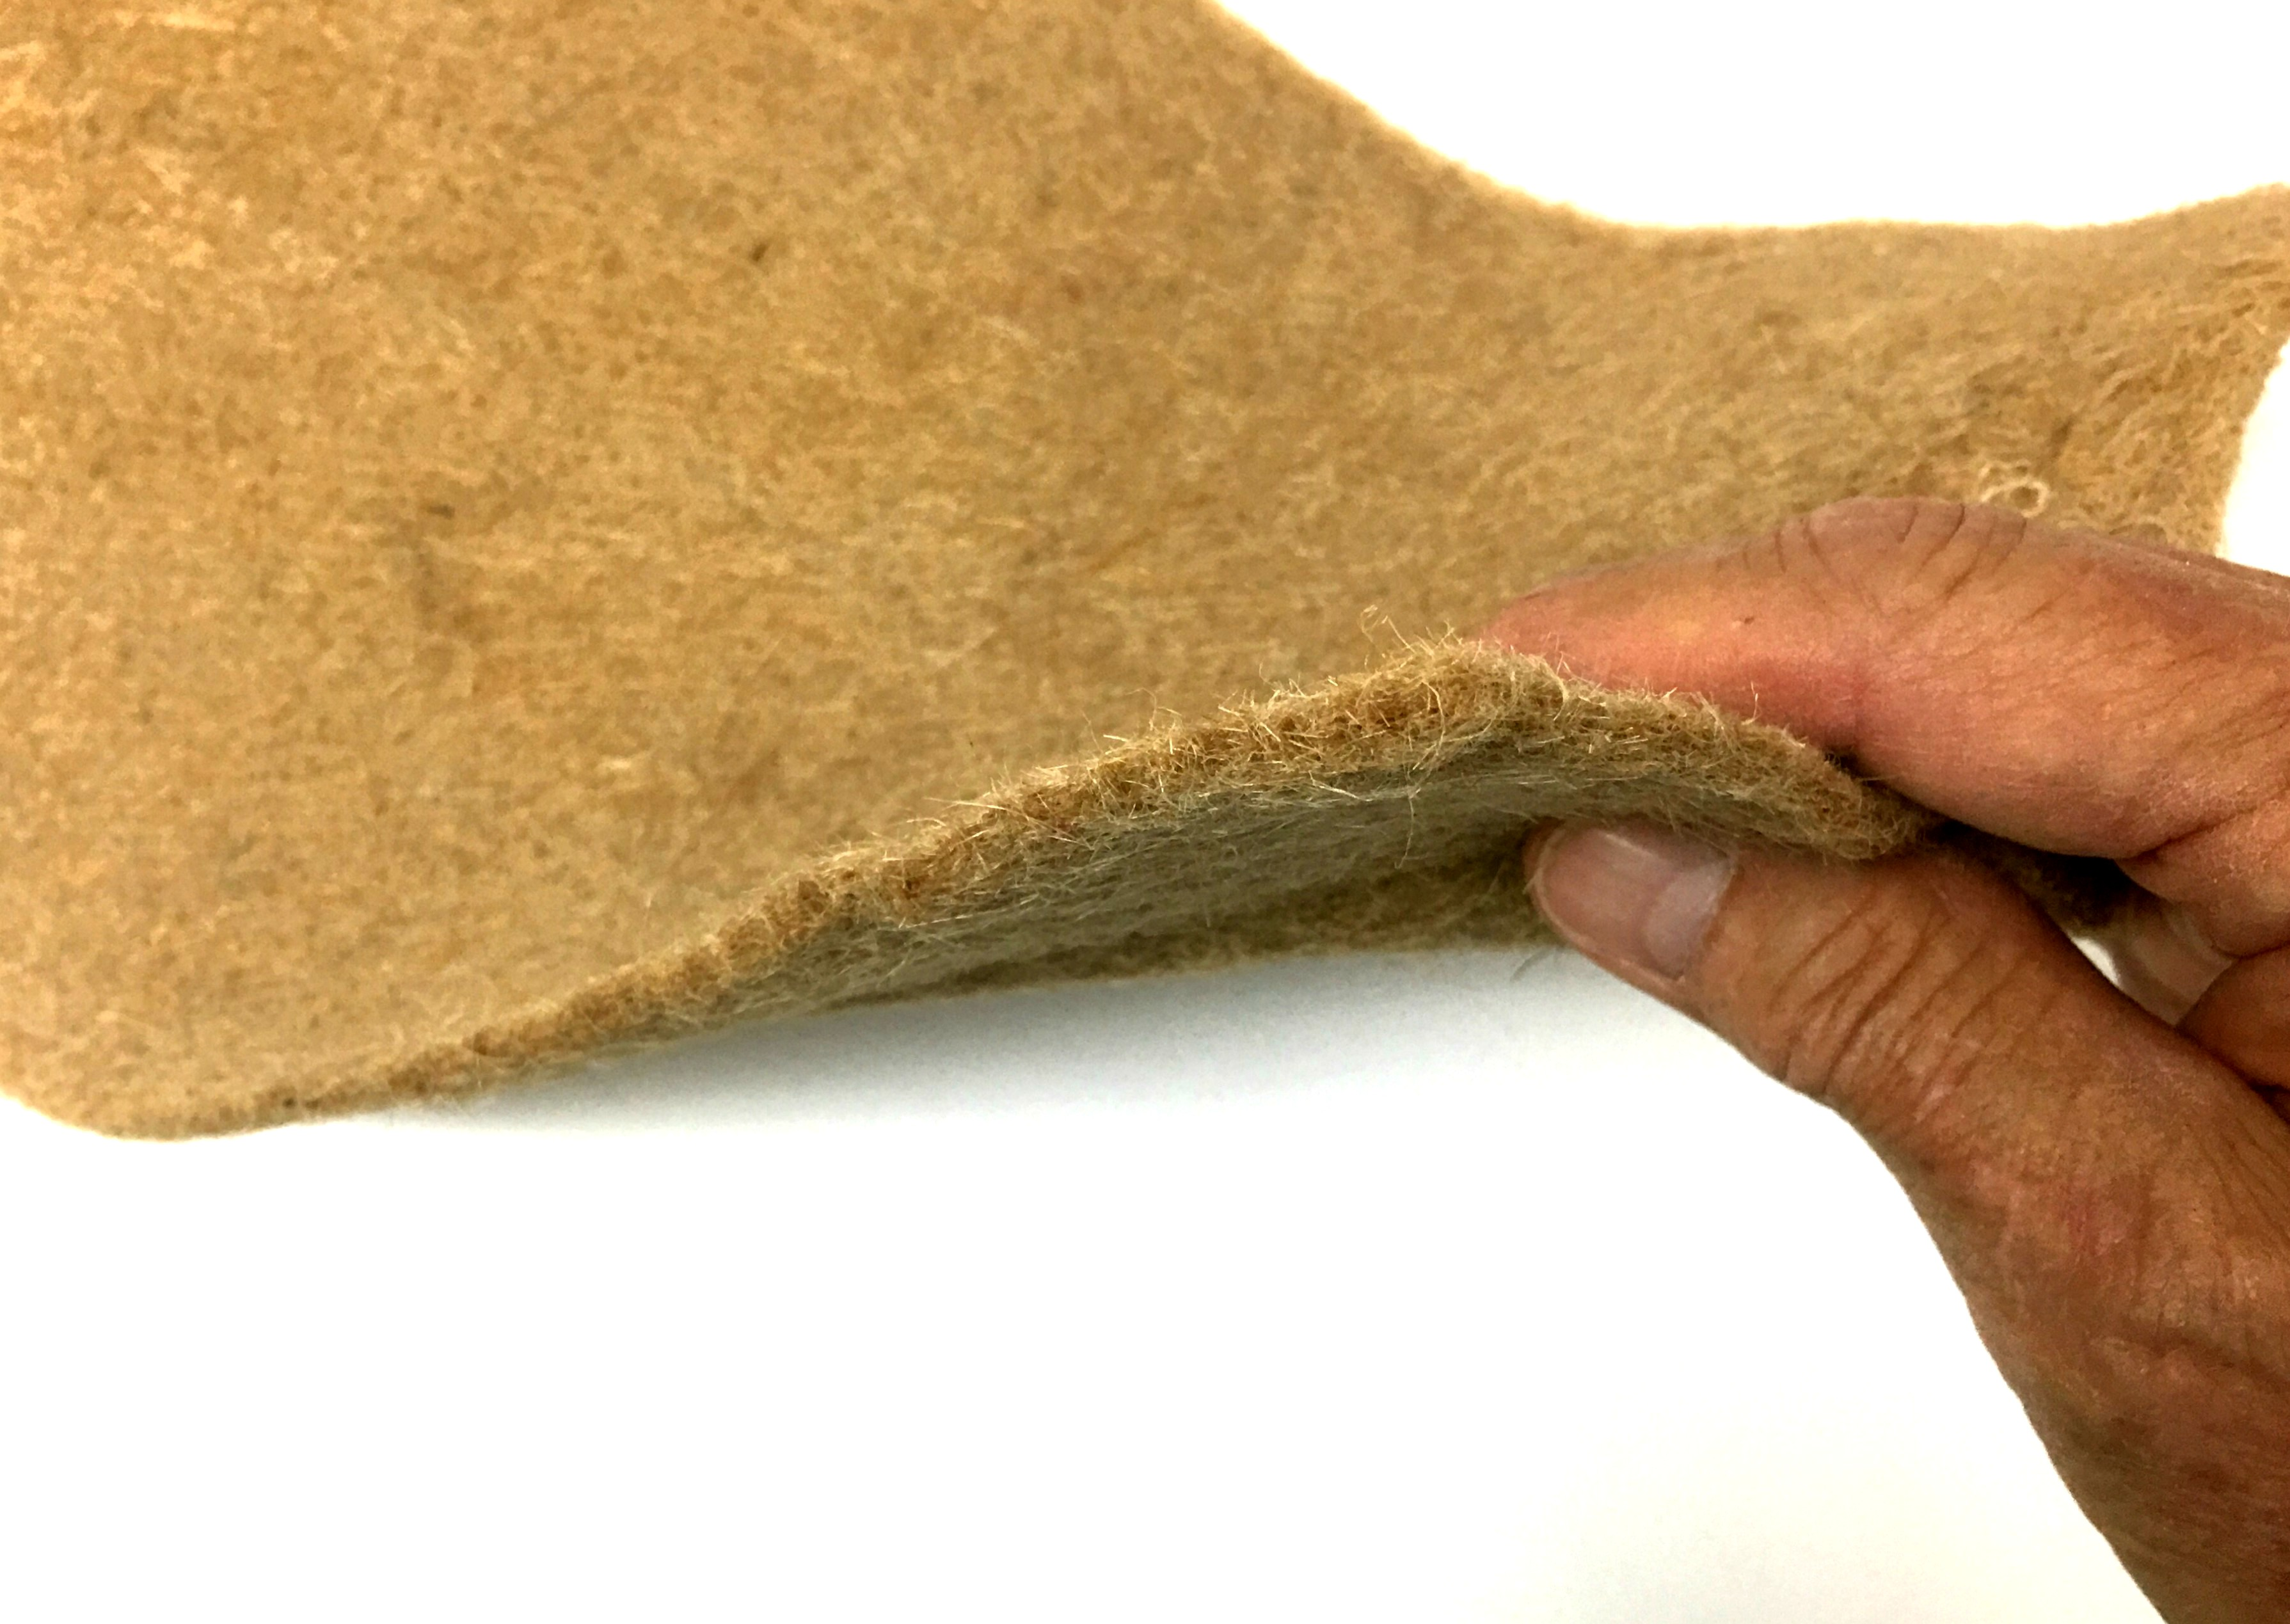 100% Natural Jute Mats for hydroponic growing - replaces soil